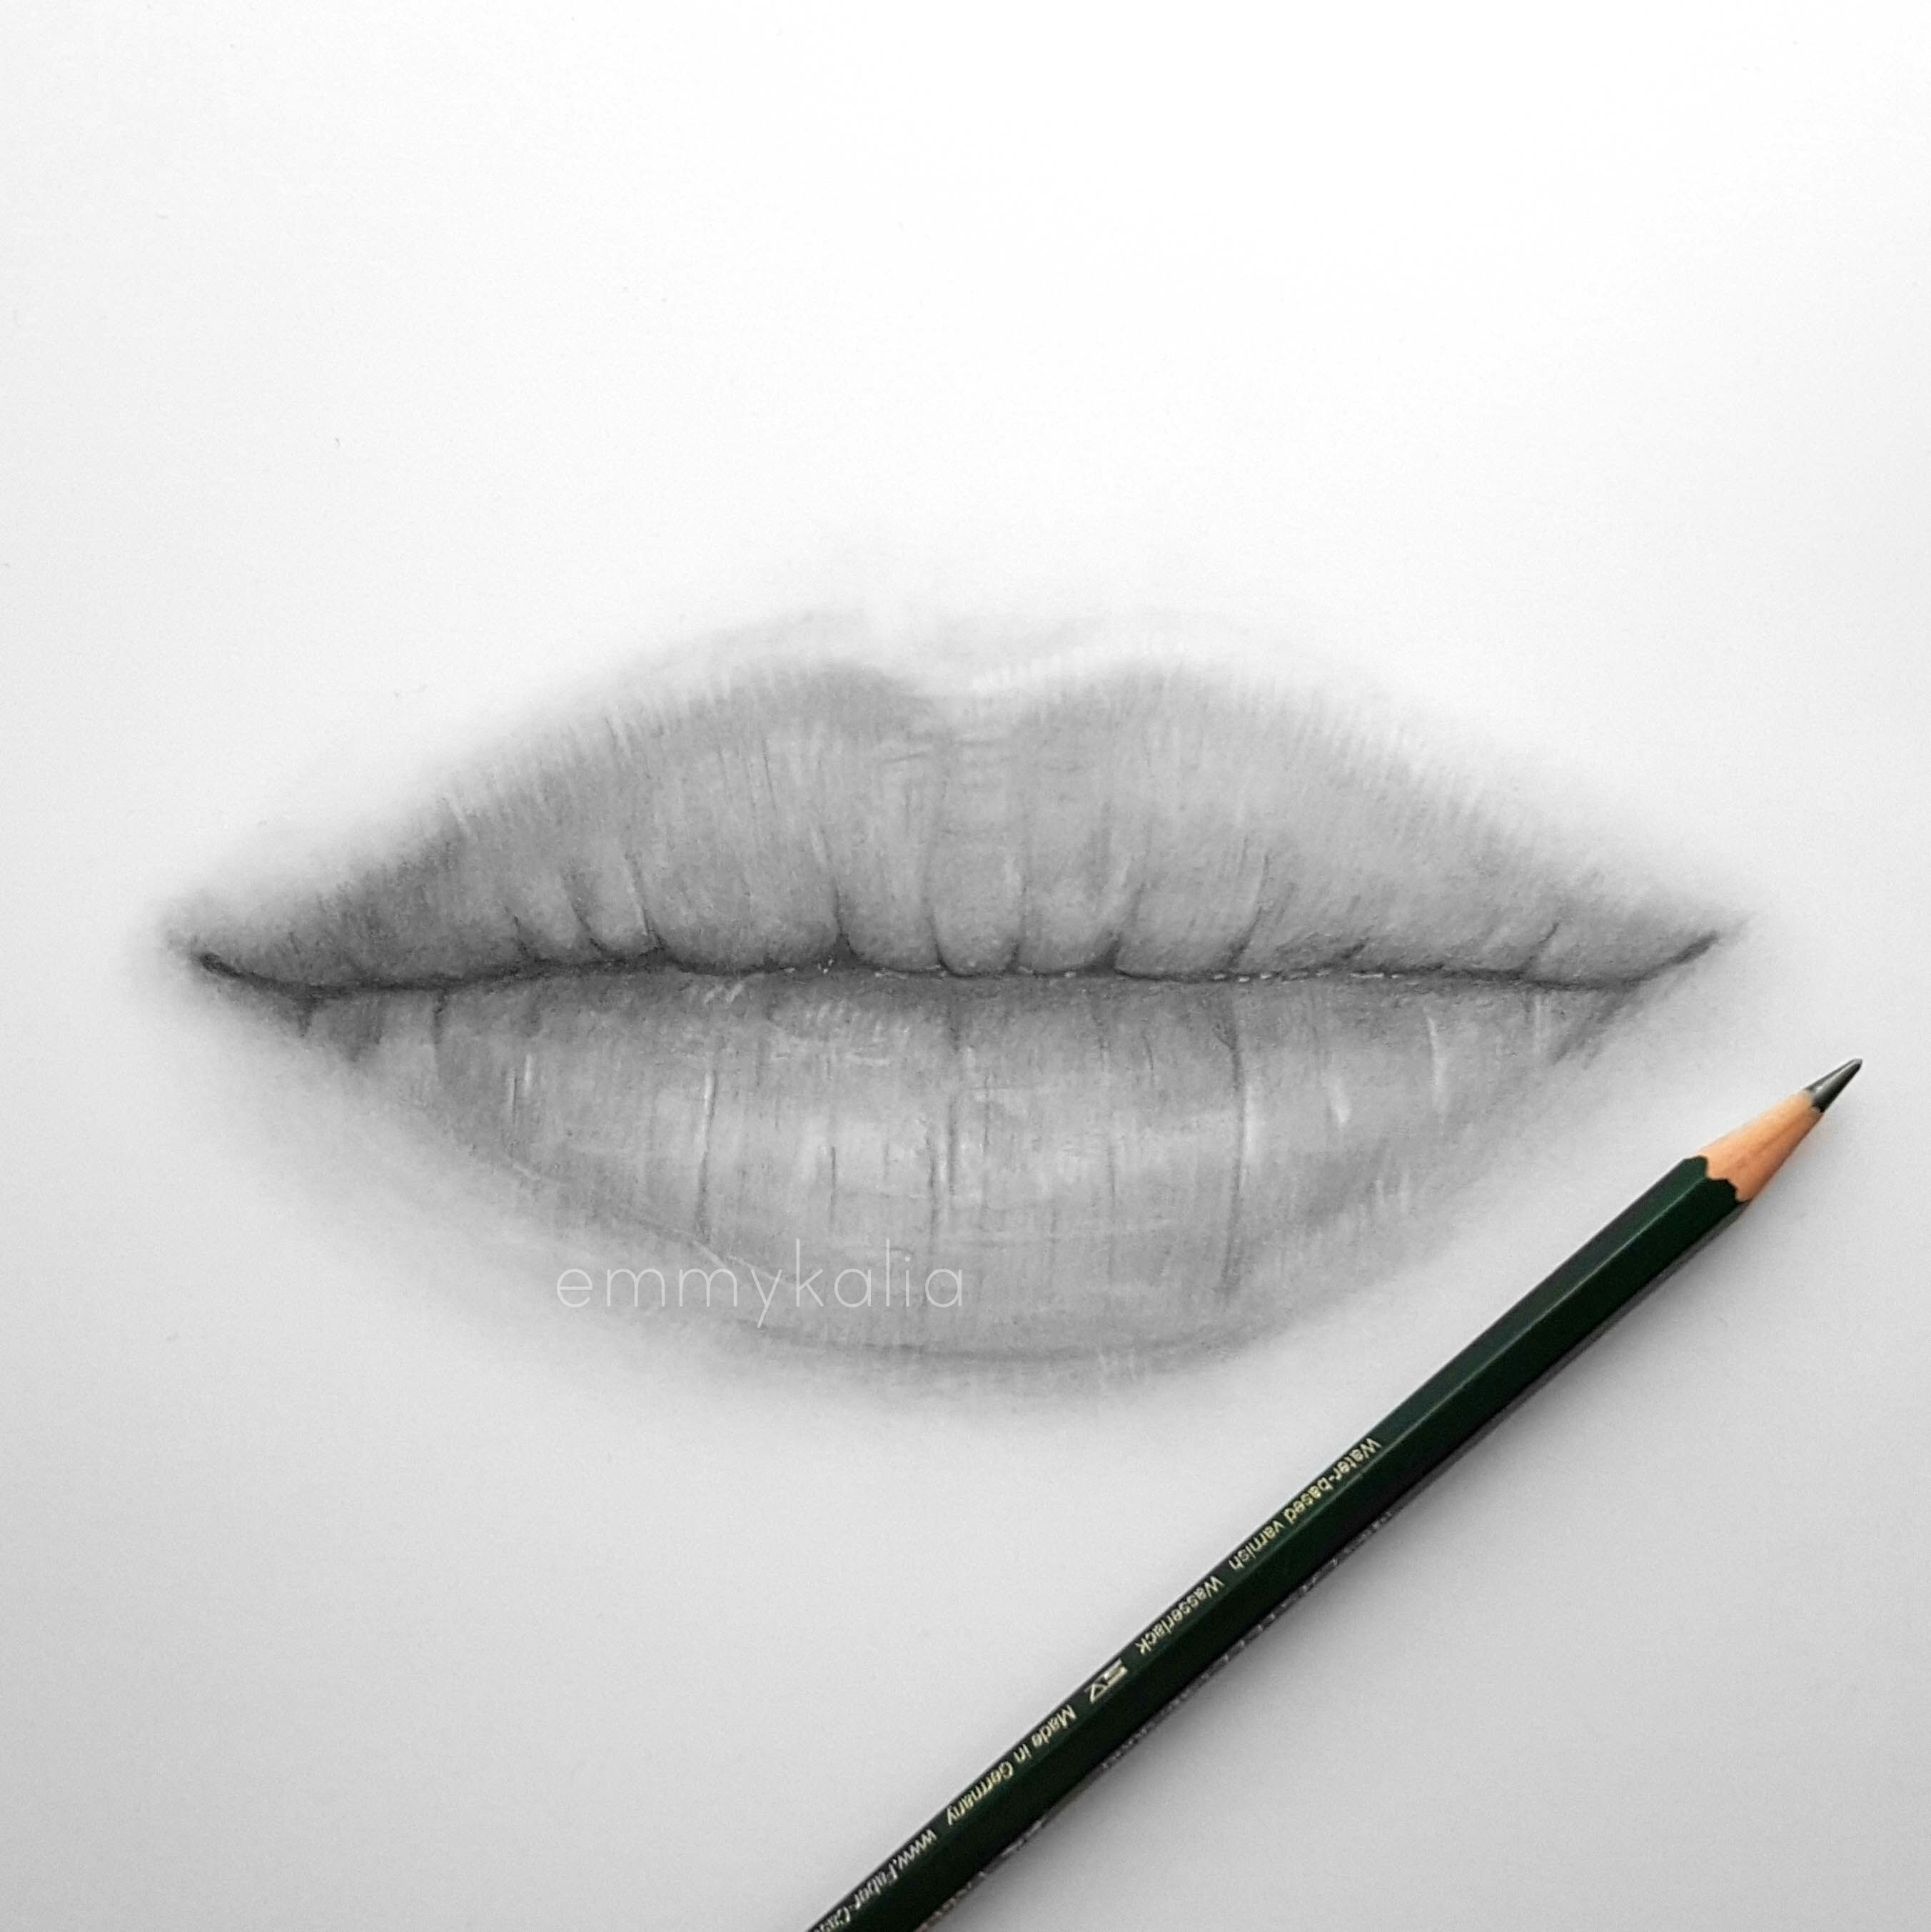 Em Graphite Drawing Tutorial Video To Engage Viewers Lip